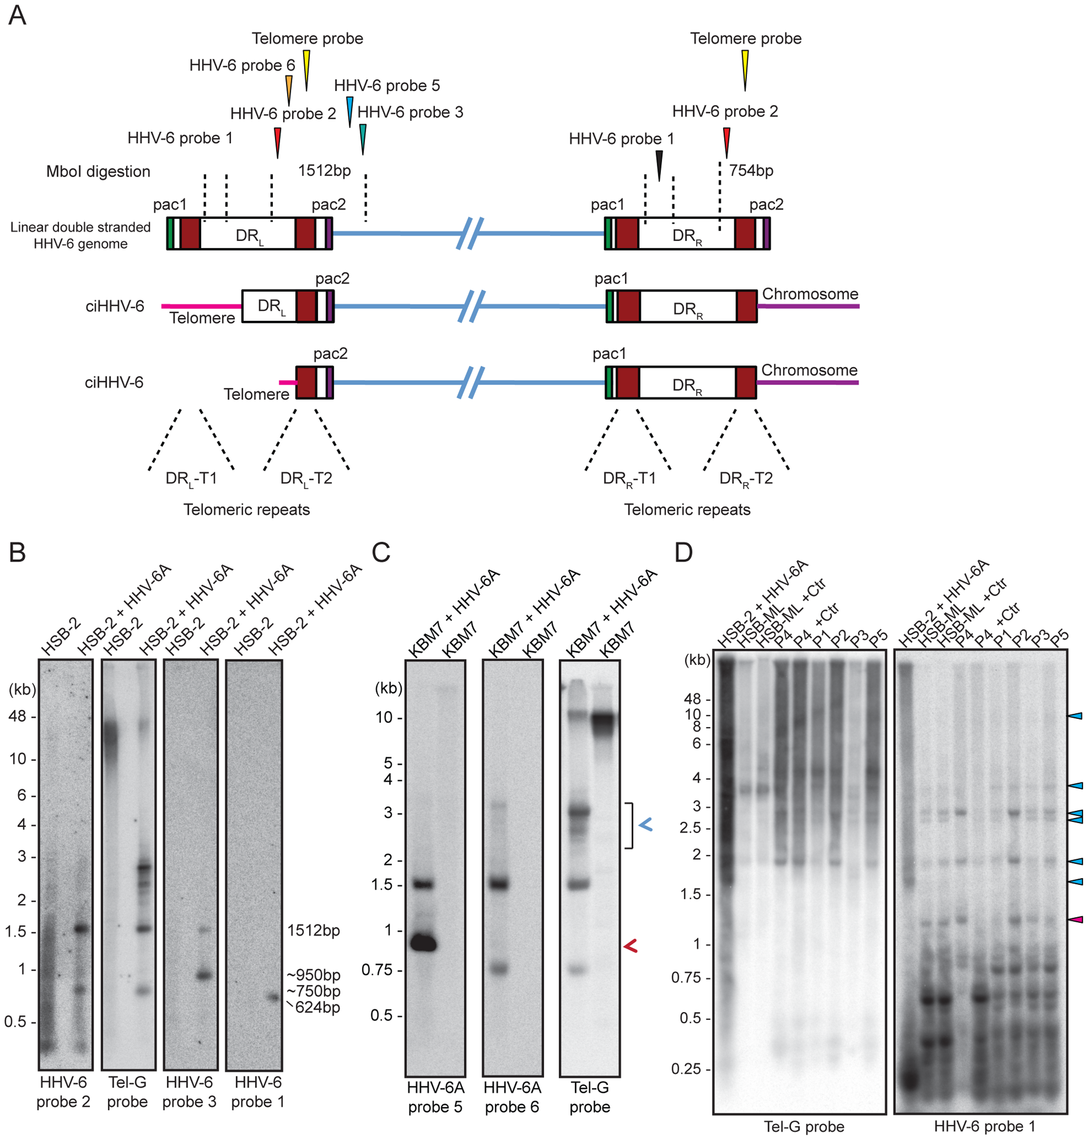 Detection of differentially processed ciHHV-6 ends.